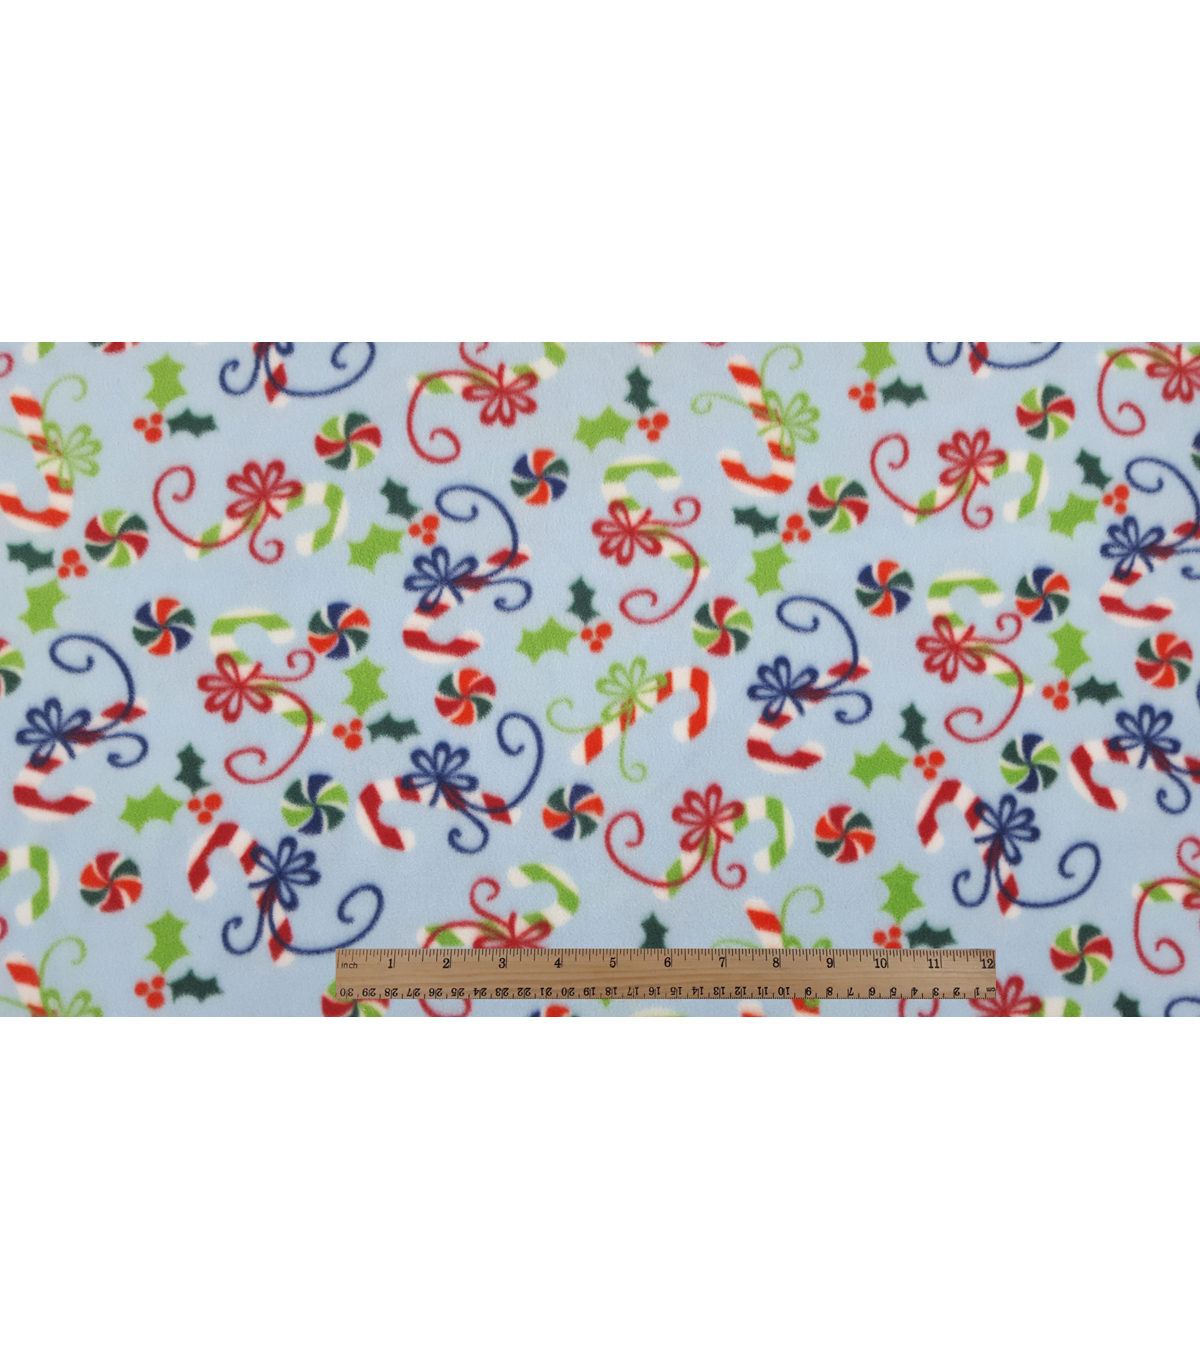 Maker\u0027s Holiday Fleece Fabric 59\u0022-Candy Canes in Bows